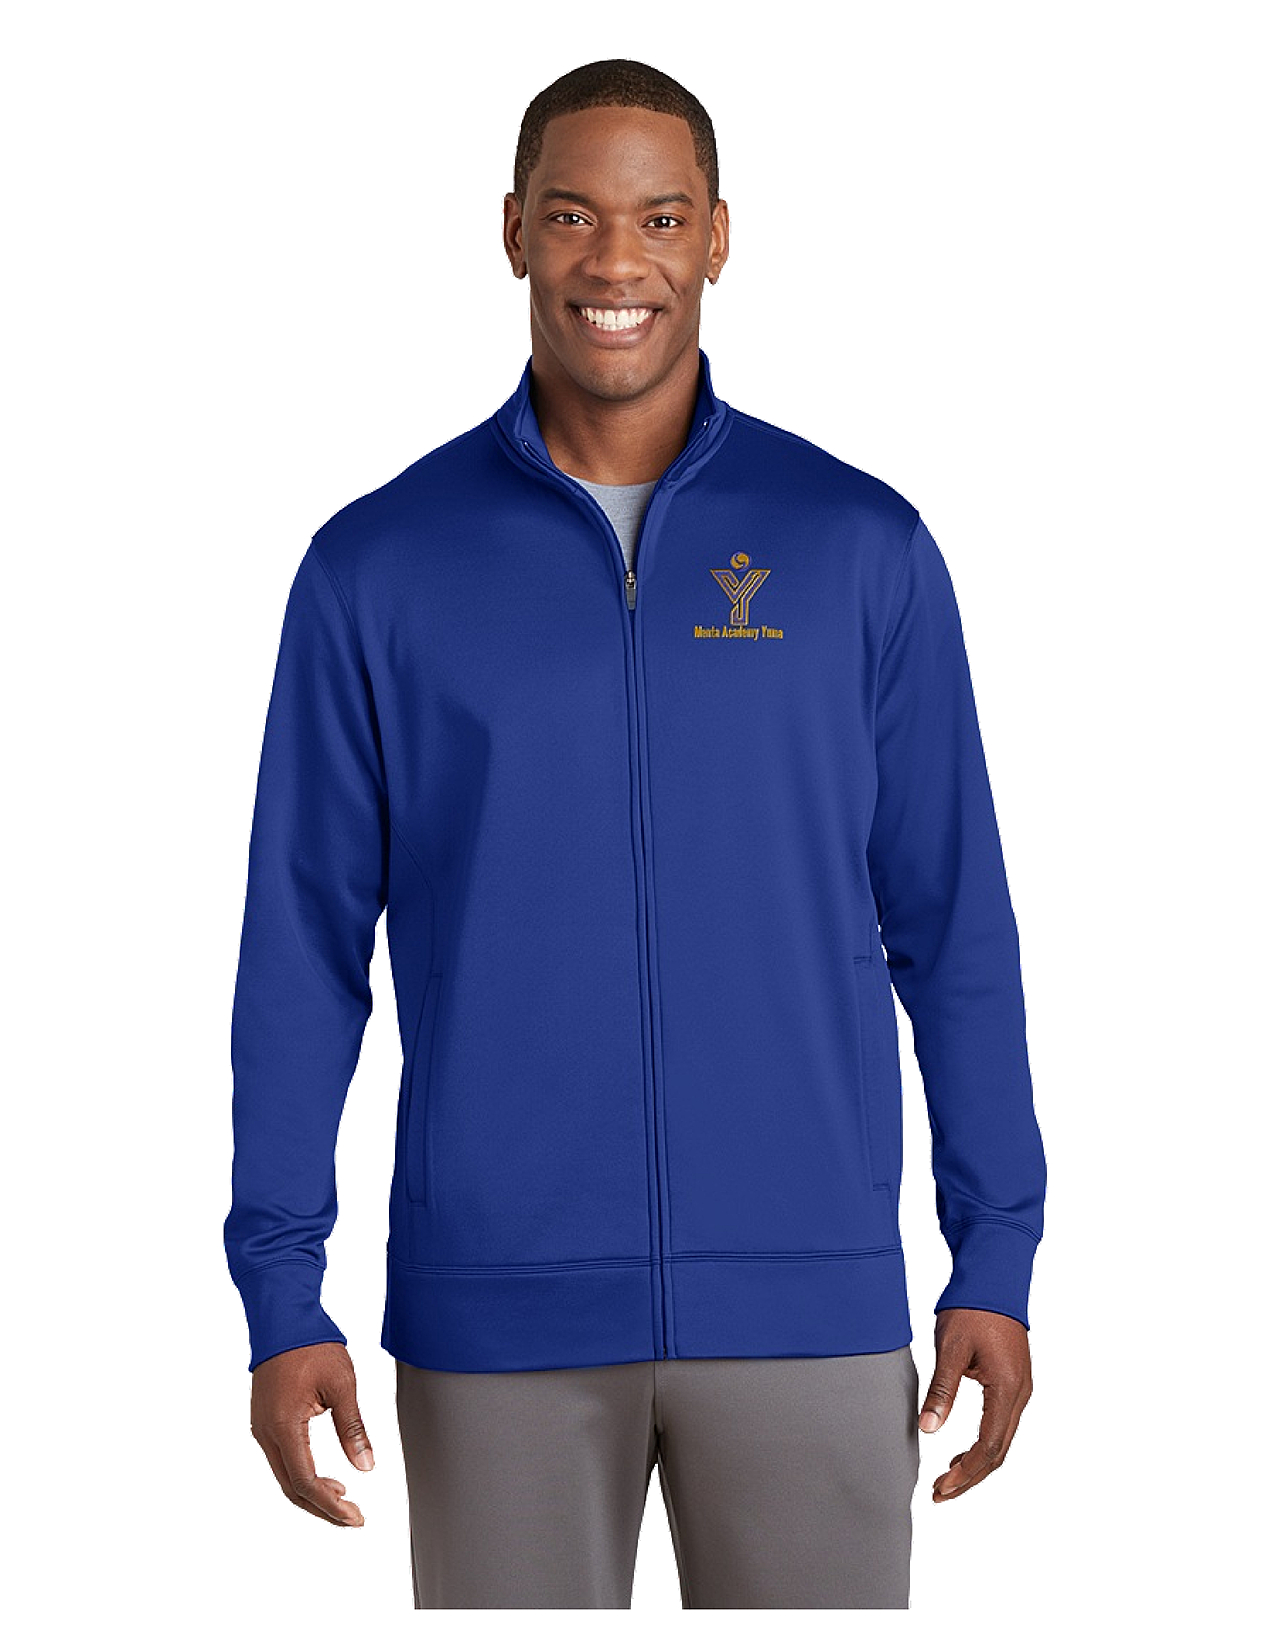 Sport-Tek® Sport-Wick® Men's Fleece Full-Zip Jacket - MAY (Jacket Size: XS Size 32-34, School Colors: Royal Blue)